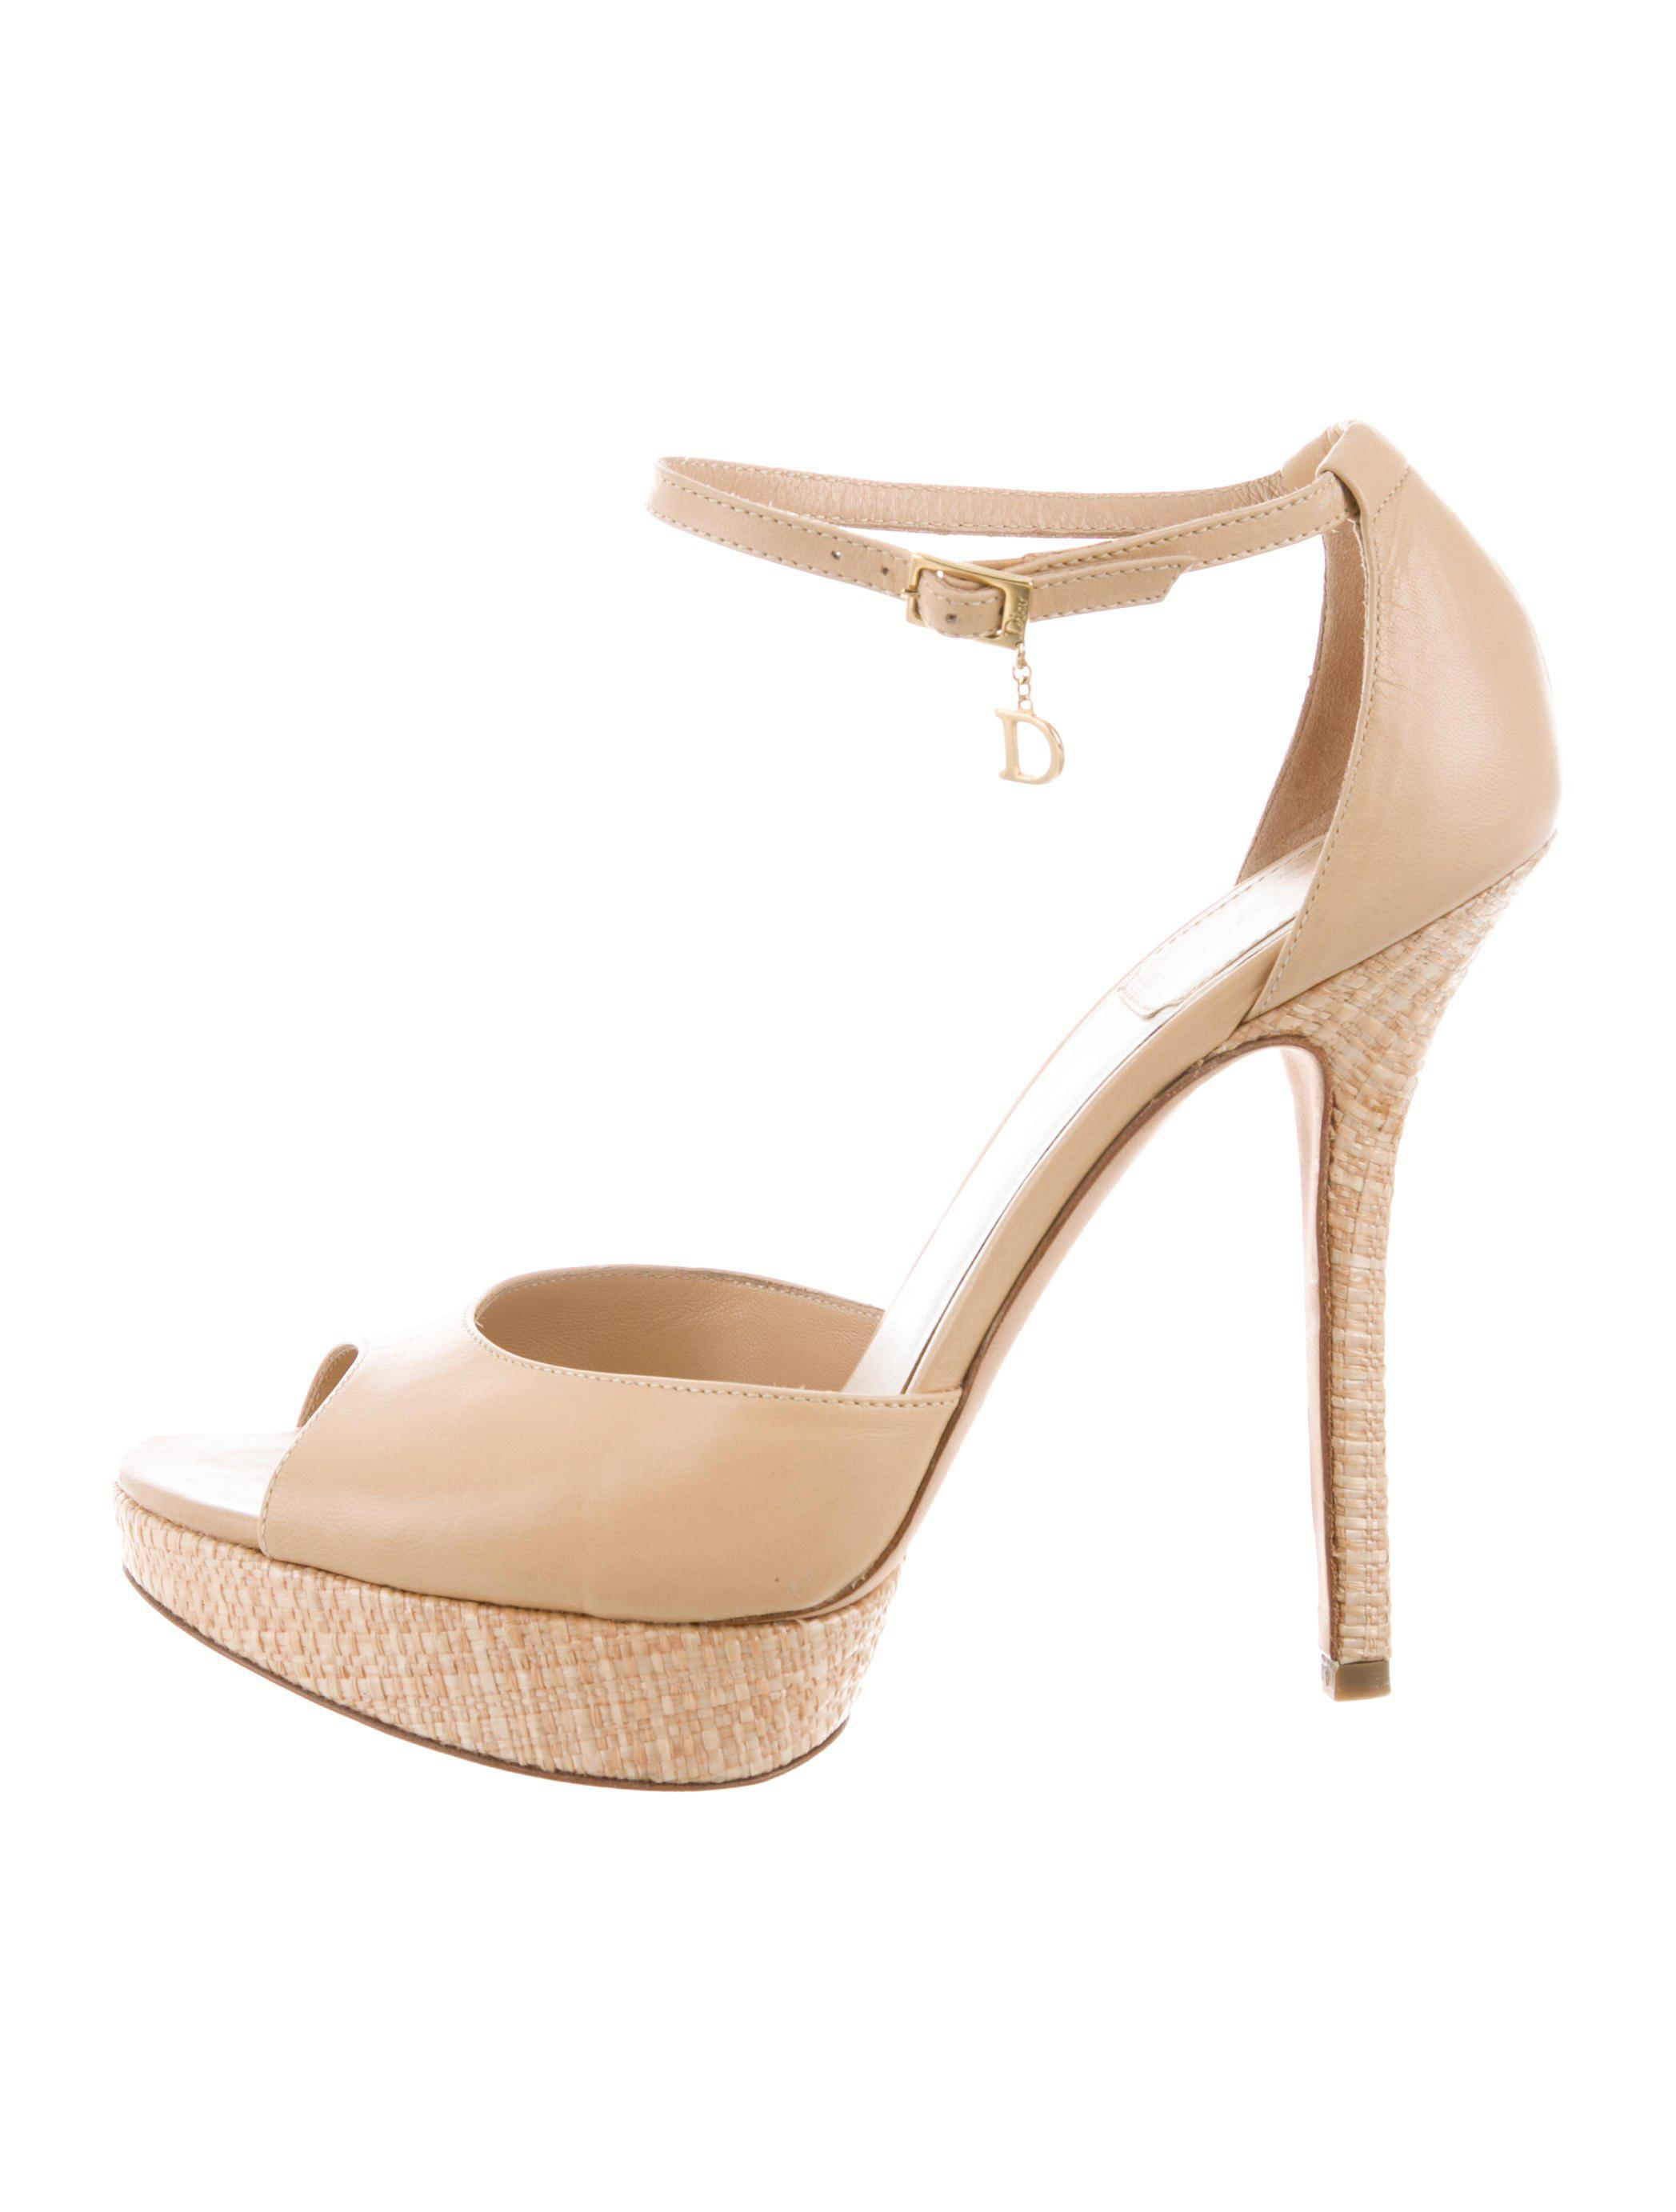 5a12742171b Lyst - Dior Platform Peep-toe Pumps Neutrals in Natural